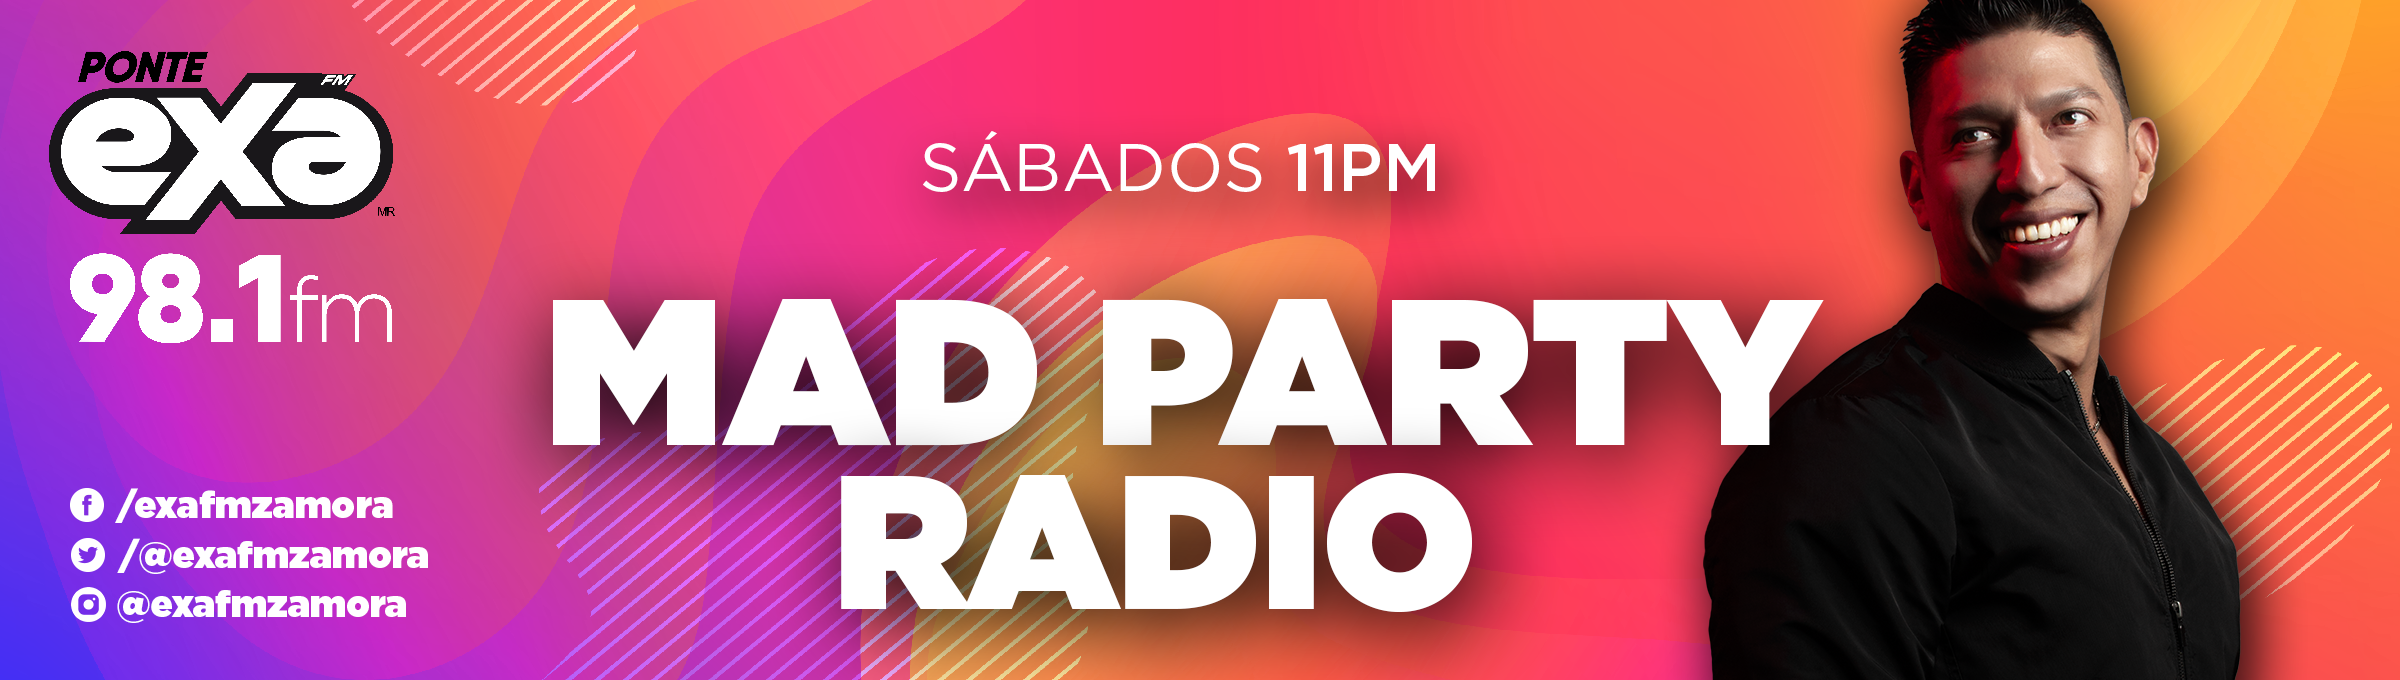 Banner Mad Party Radio 2400 x 680 px.png